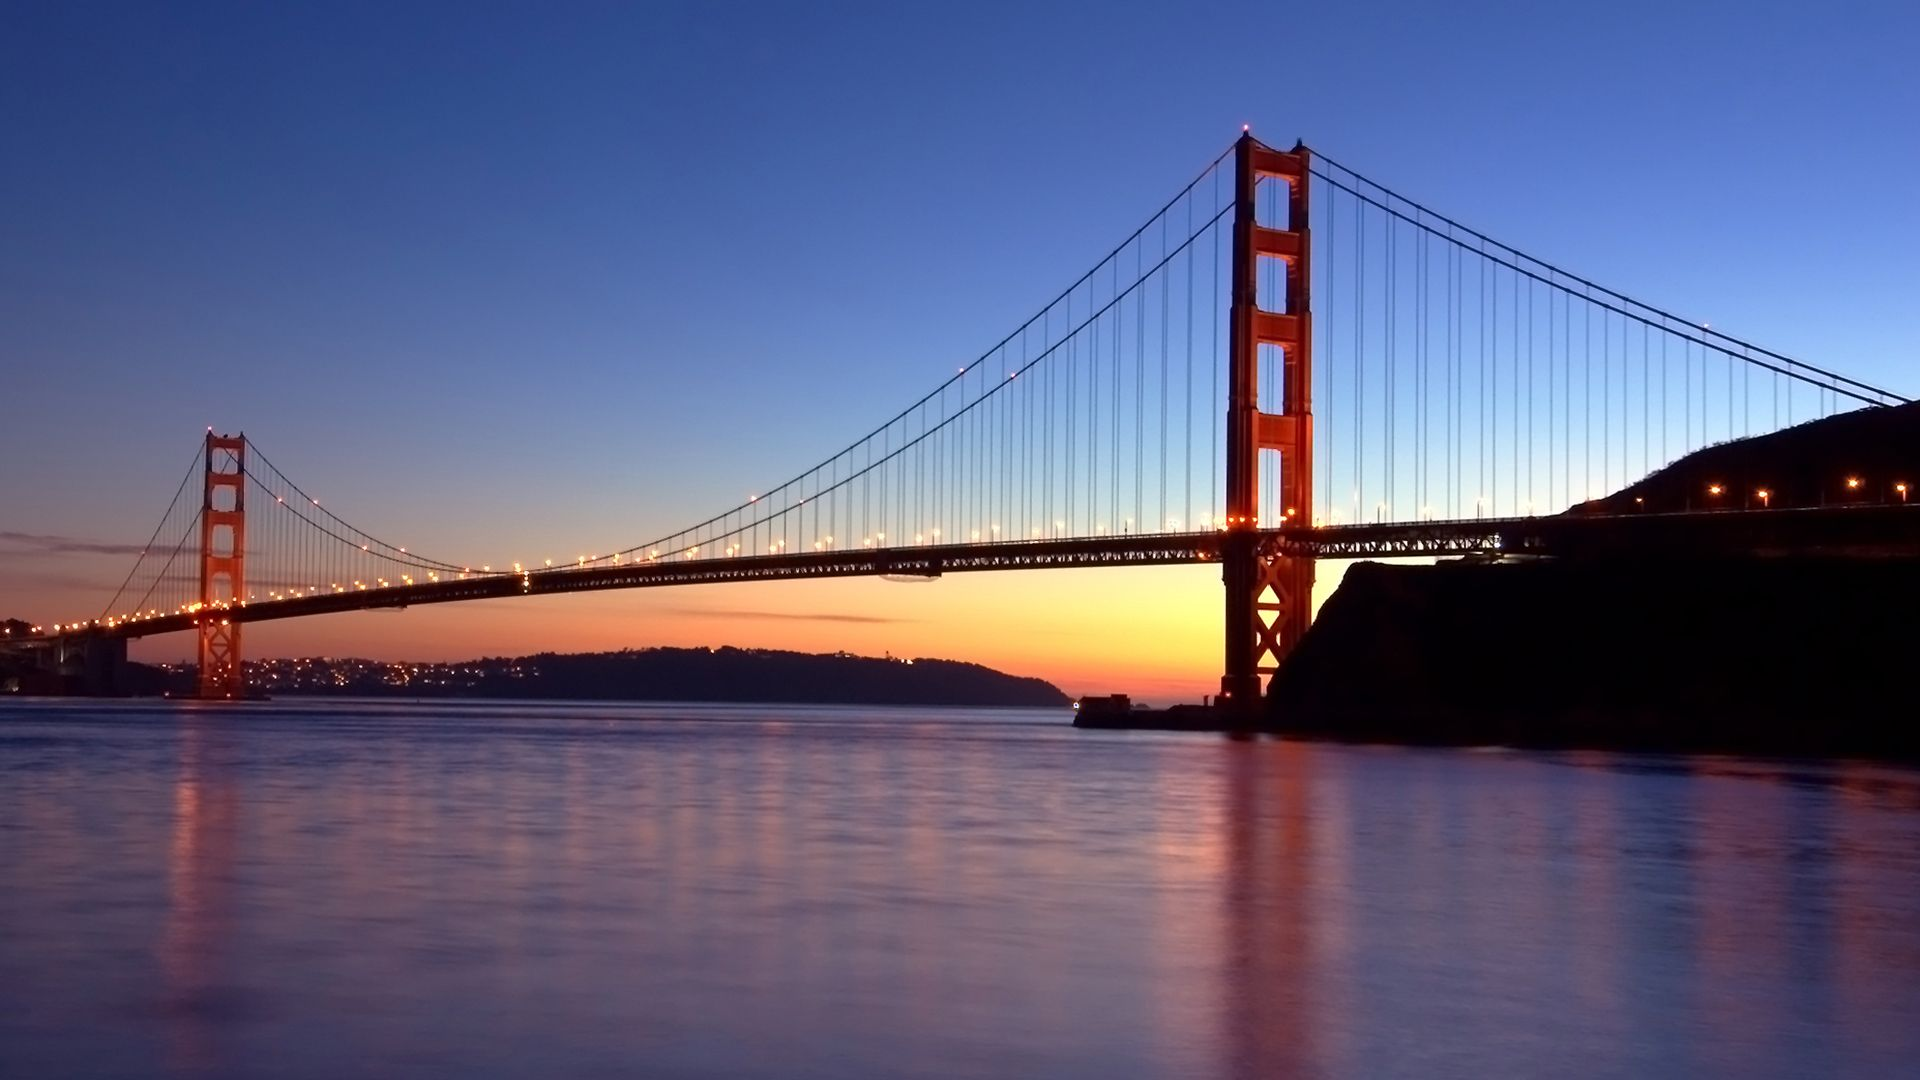 Golden Gate High Definition Backgrounds | 1920x1080 Backgrounds PlusPng.com  - Golden Gate Bridge PNG HD